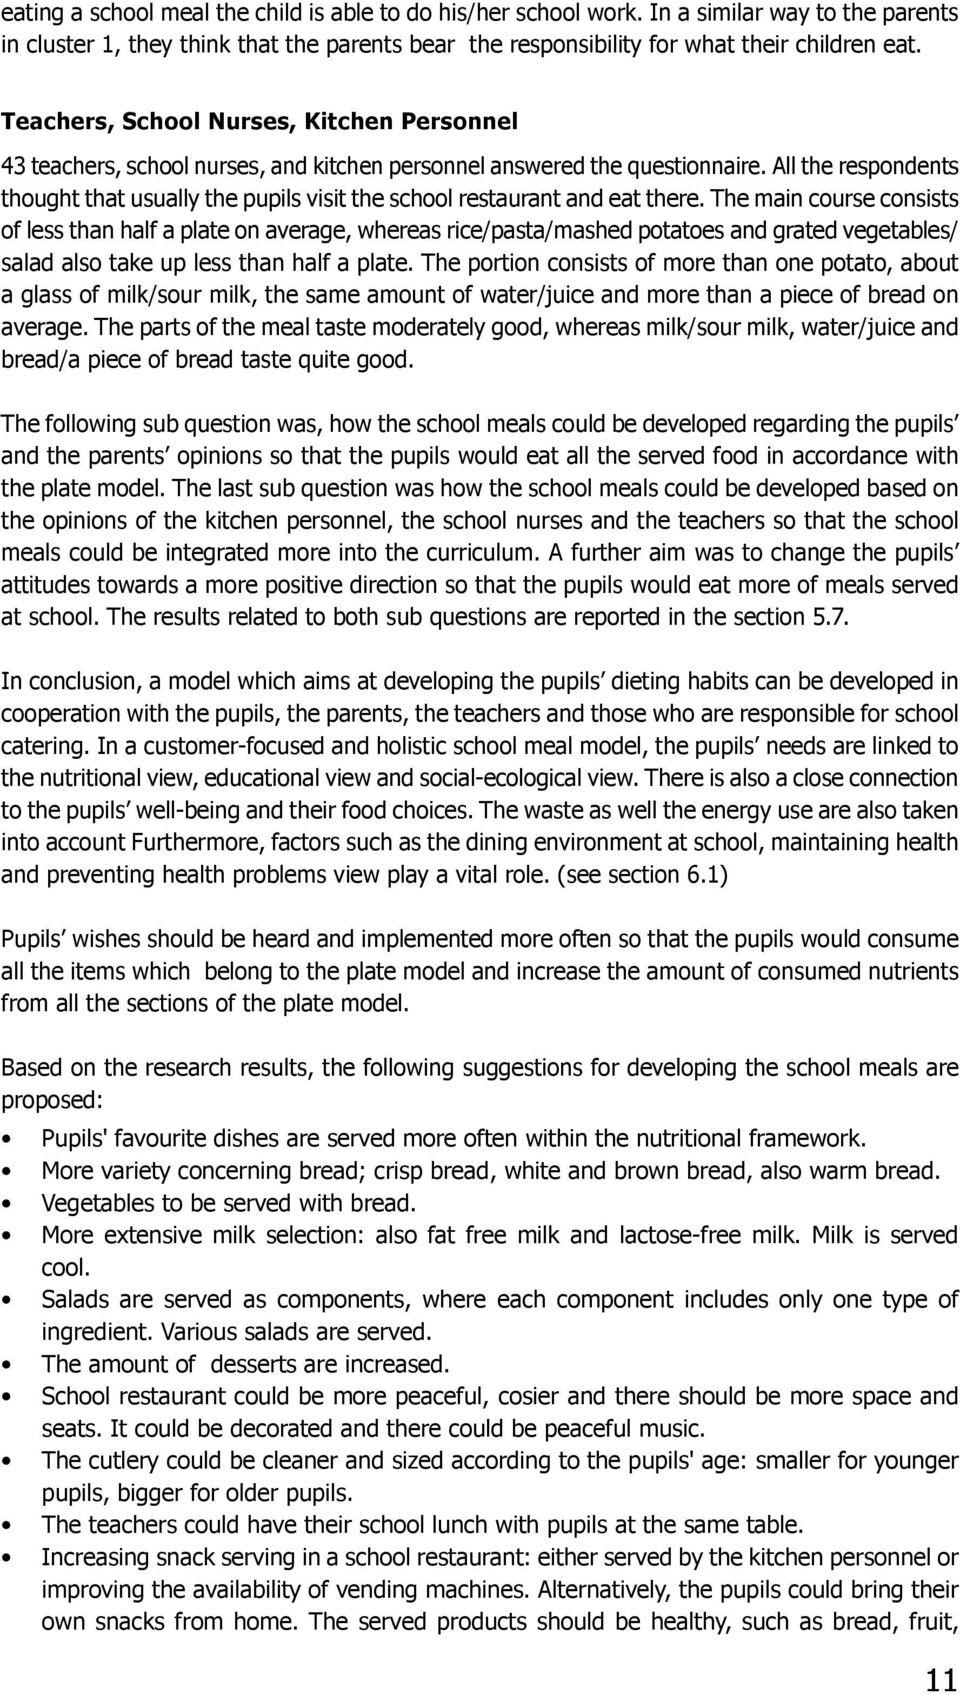 All the respondents thought that usually the pupils visit the school restaurant and eat there.